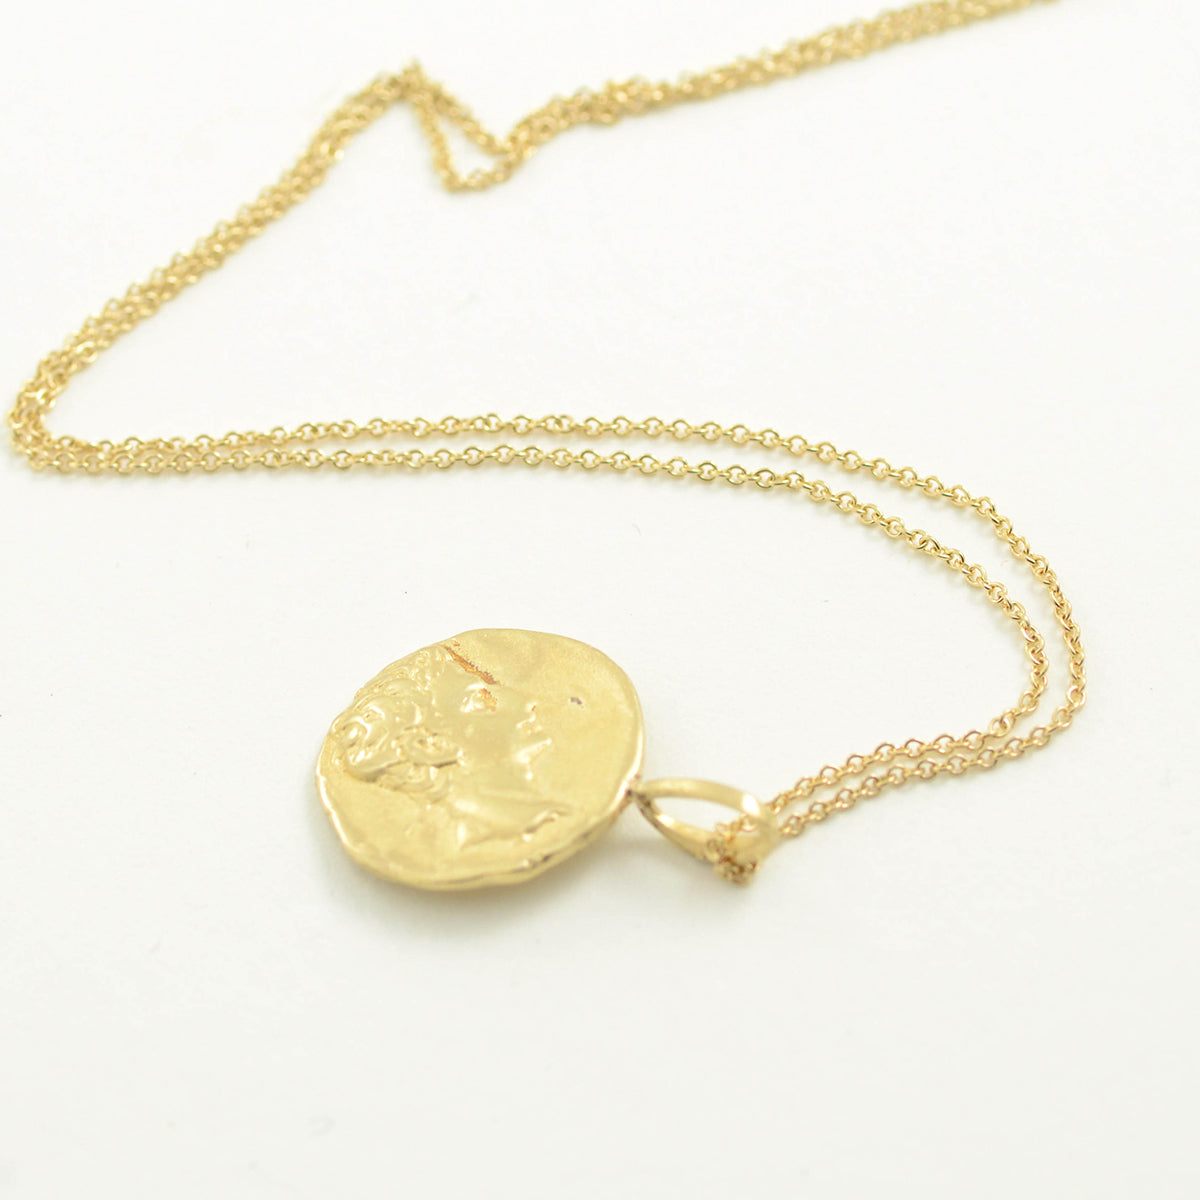 Robin Haley antiquities collection kindred spirits necklace in 14kt yellow gold